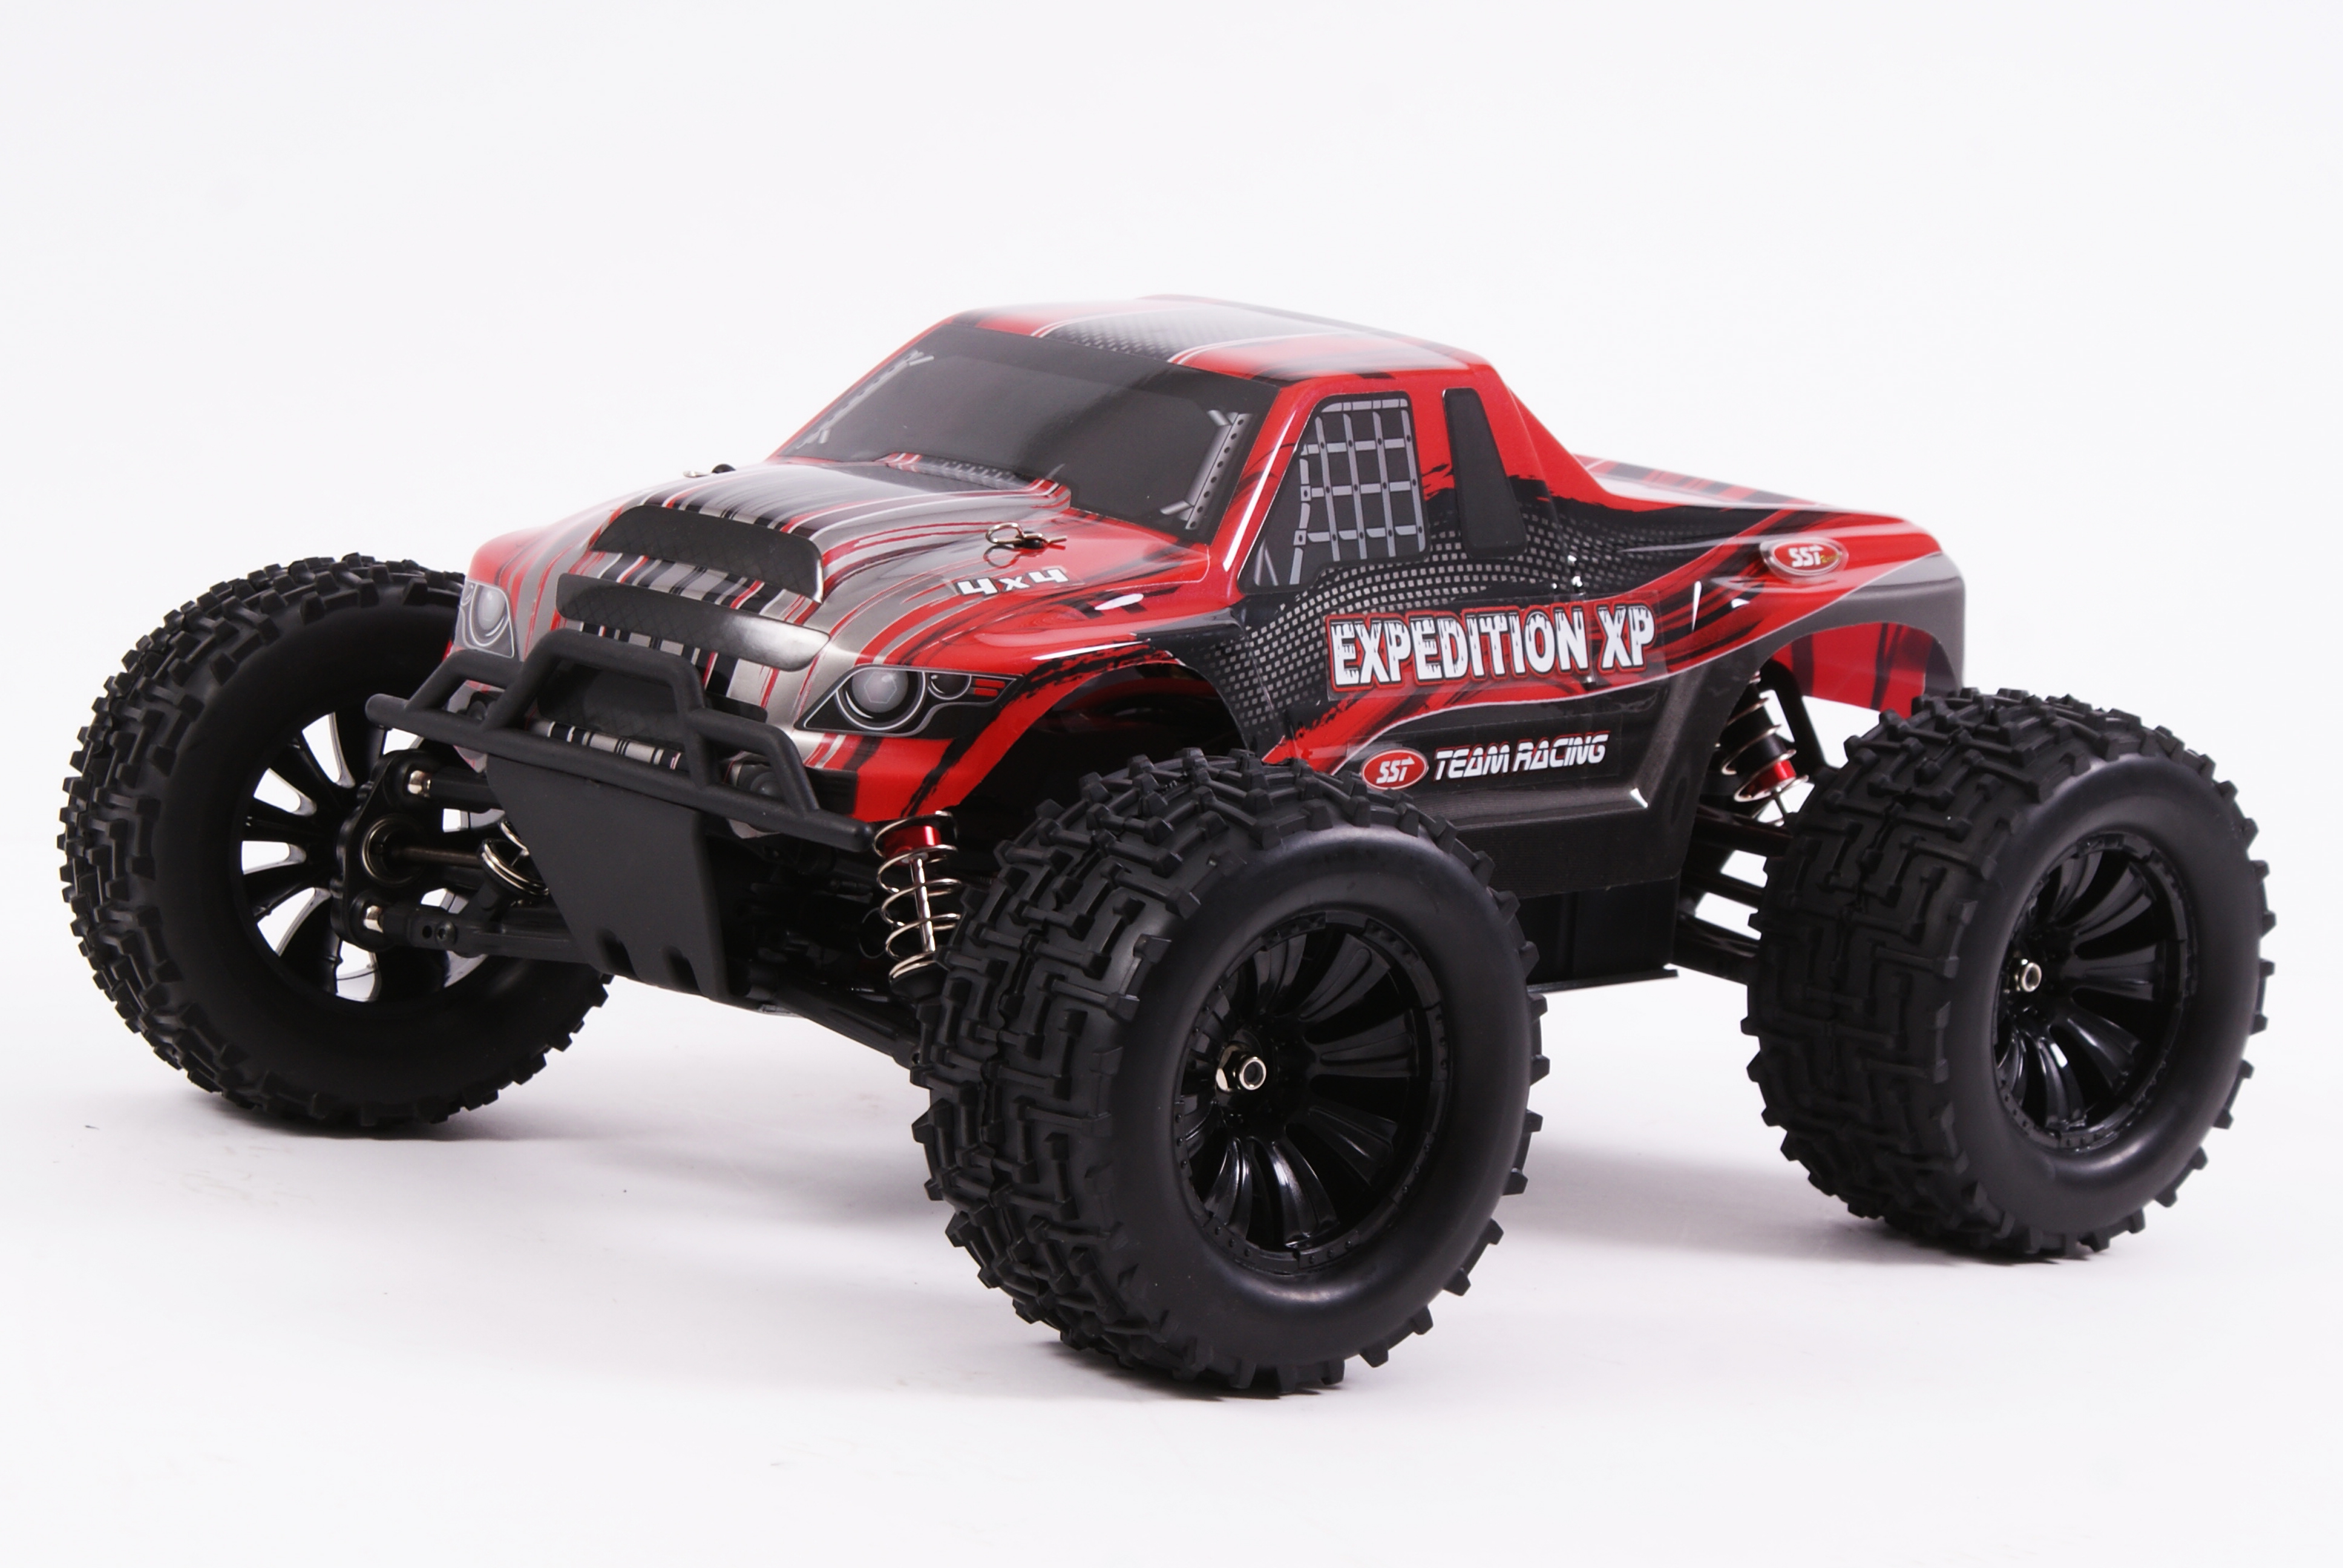 SST RACING - EXPEDITION 4WD MONSTER TRUCK 1/10 RED RTR